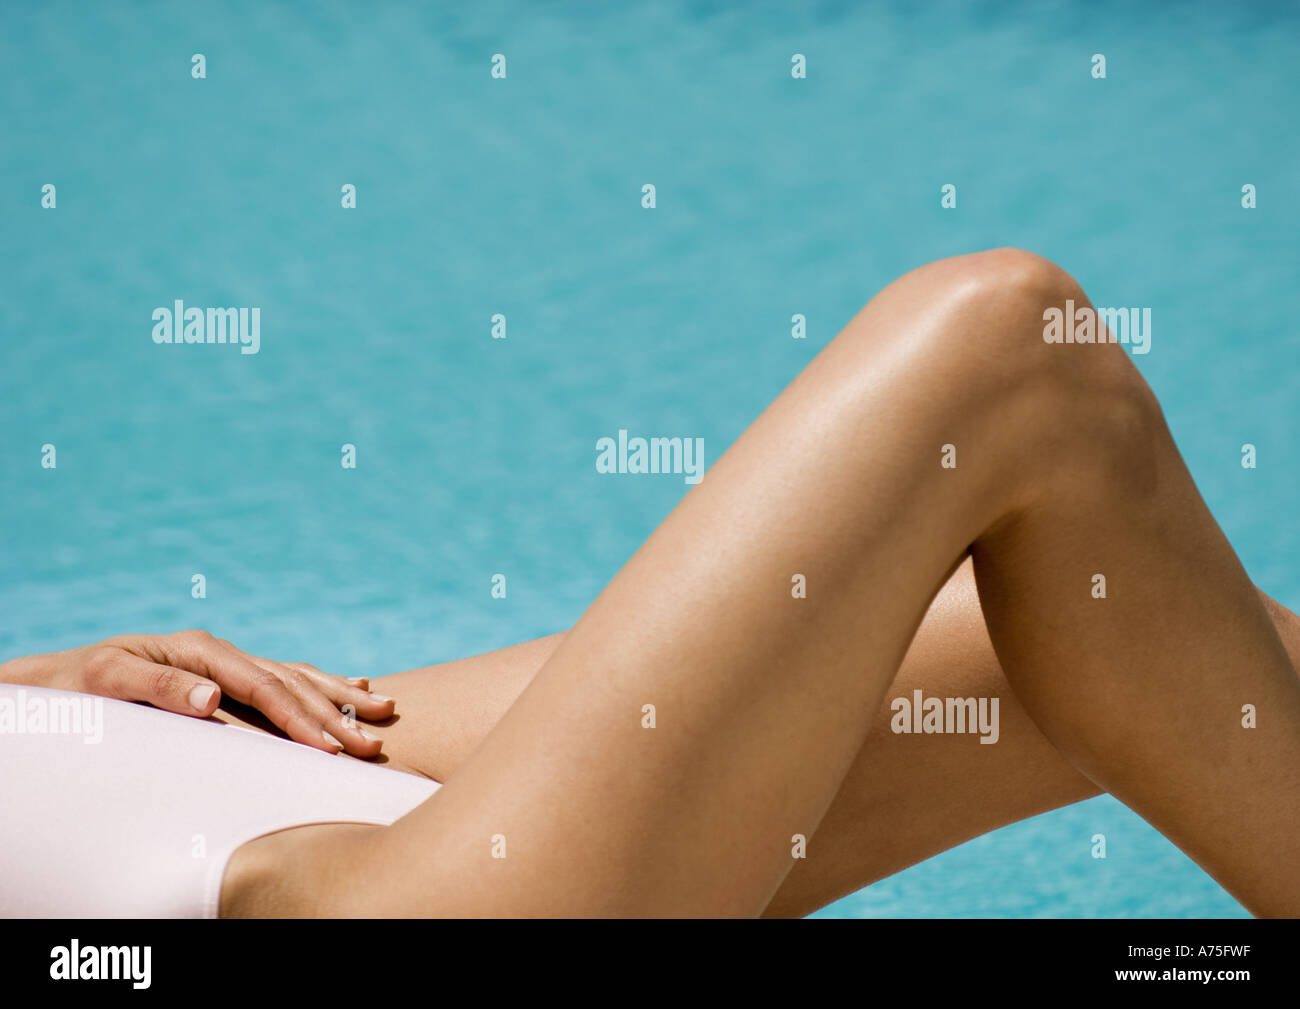 Woman lying by side of pool, partial view - Stock Image